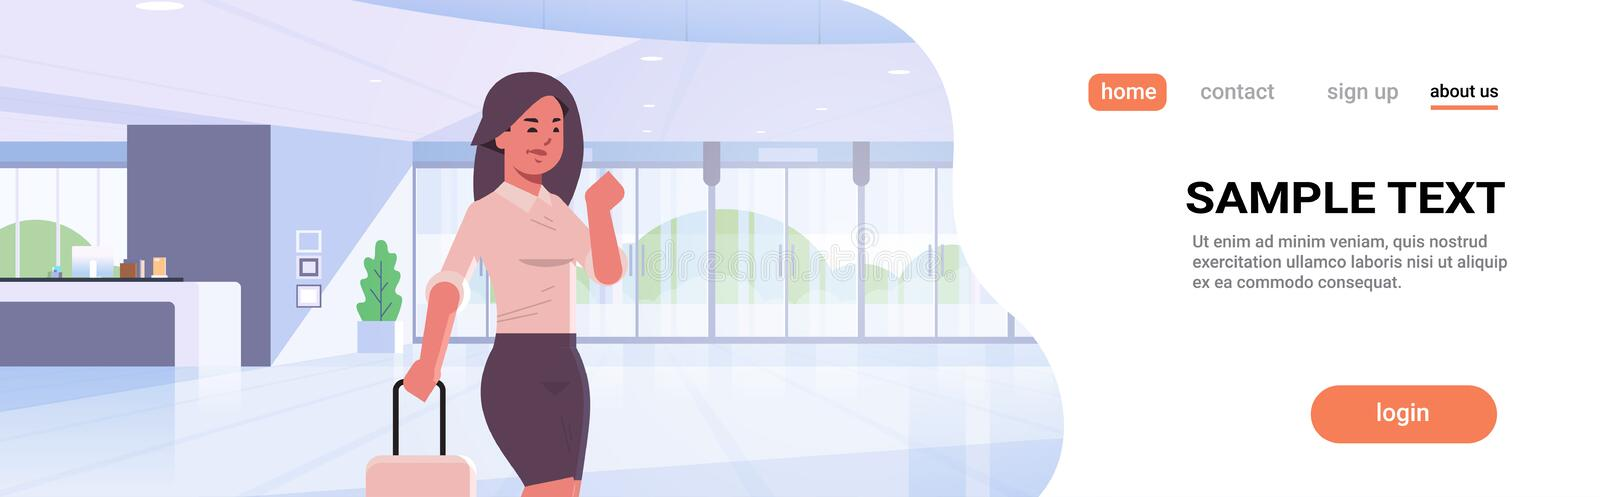 Businesswoman with luggage modern reception area business woman holding suitcase girl standing in lobby contemporary vector illustration